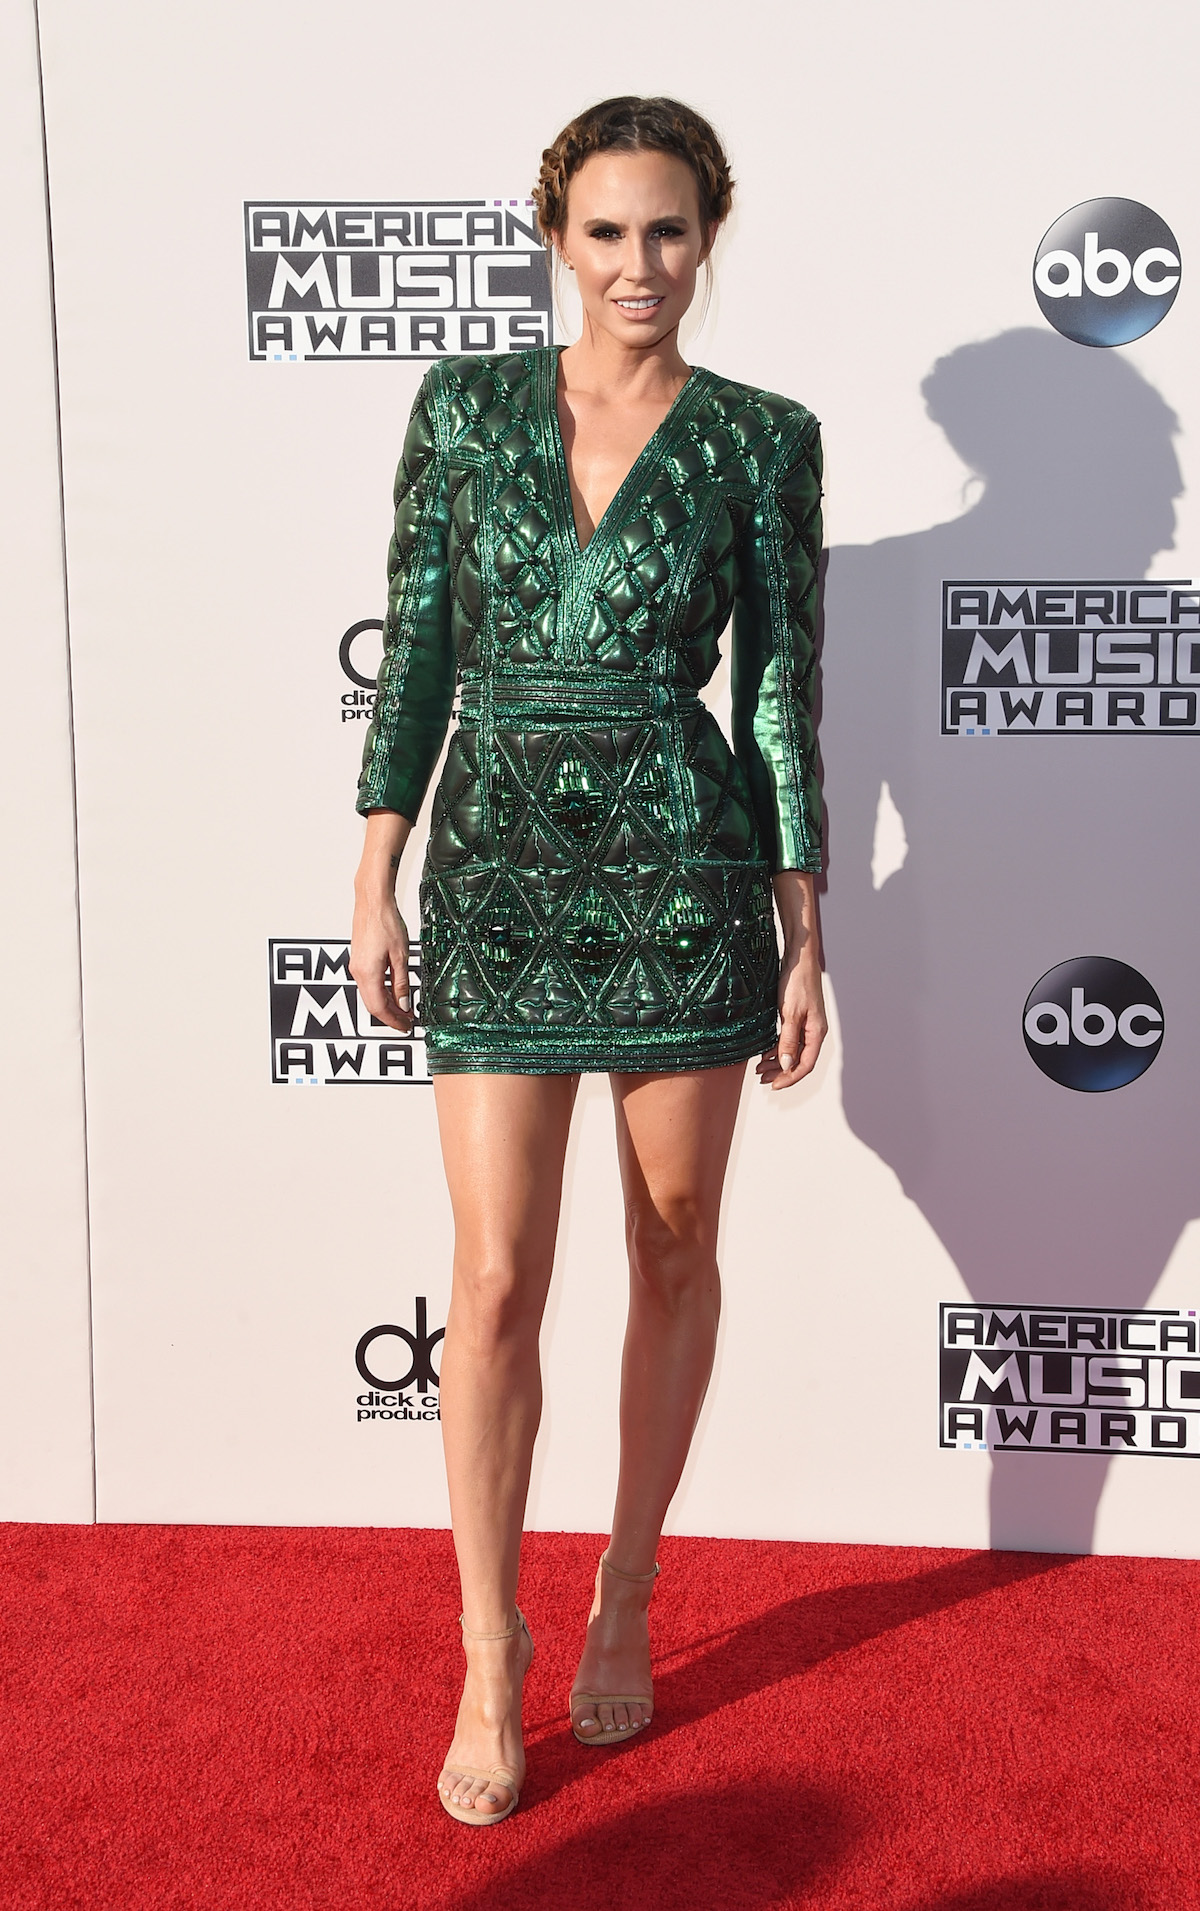 ef8d699c5d 2015 American Music Awards Red Carpet Photo Gallery   American Music Awards